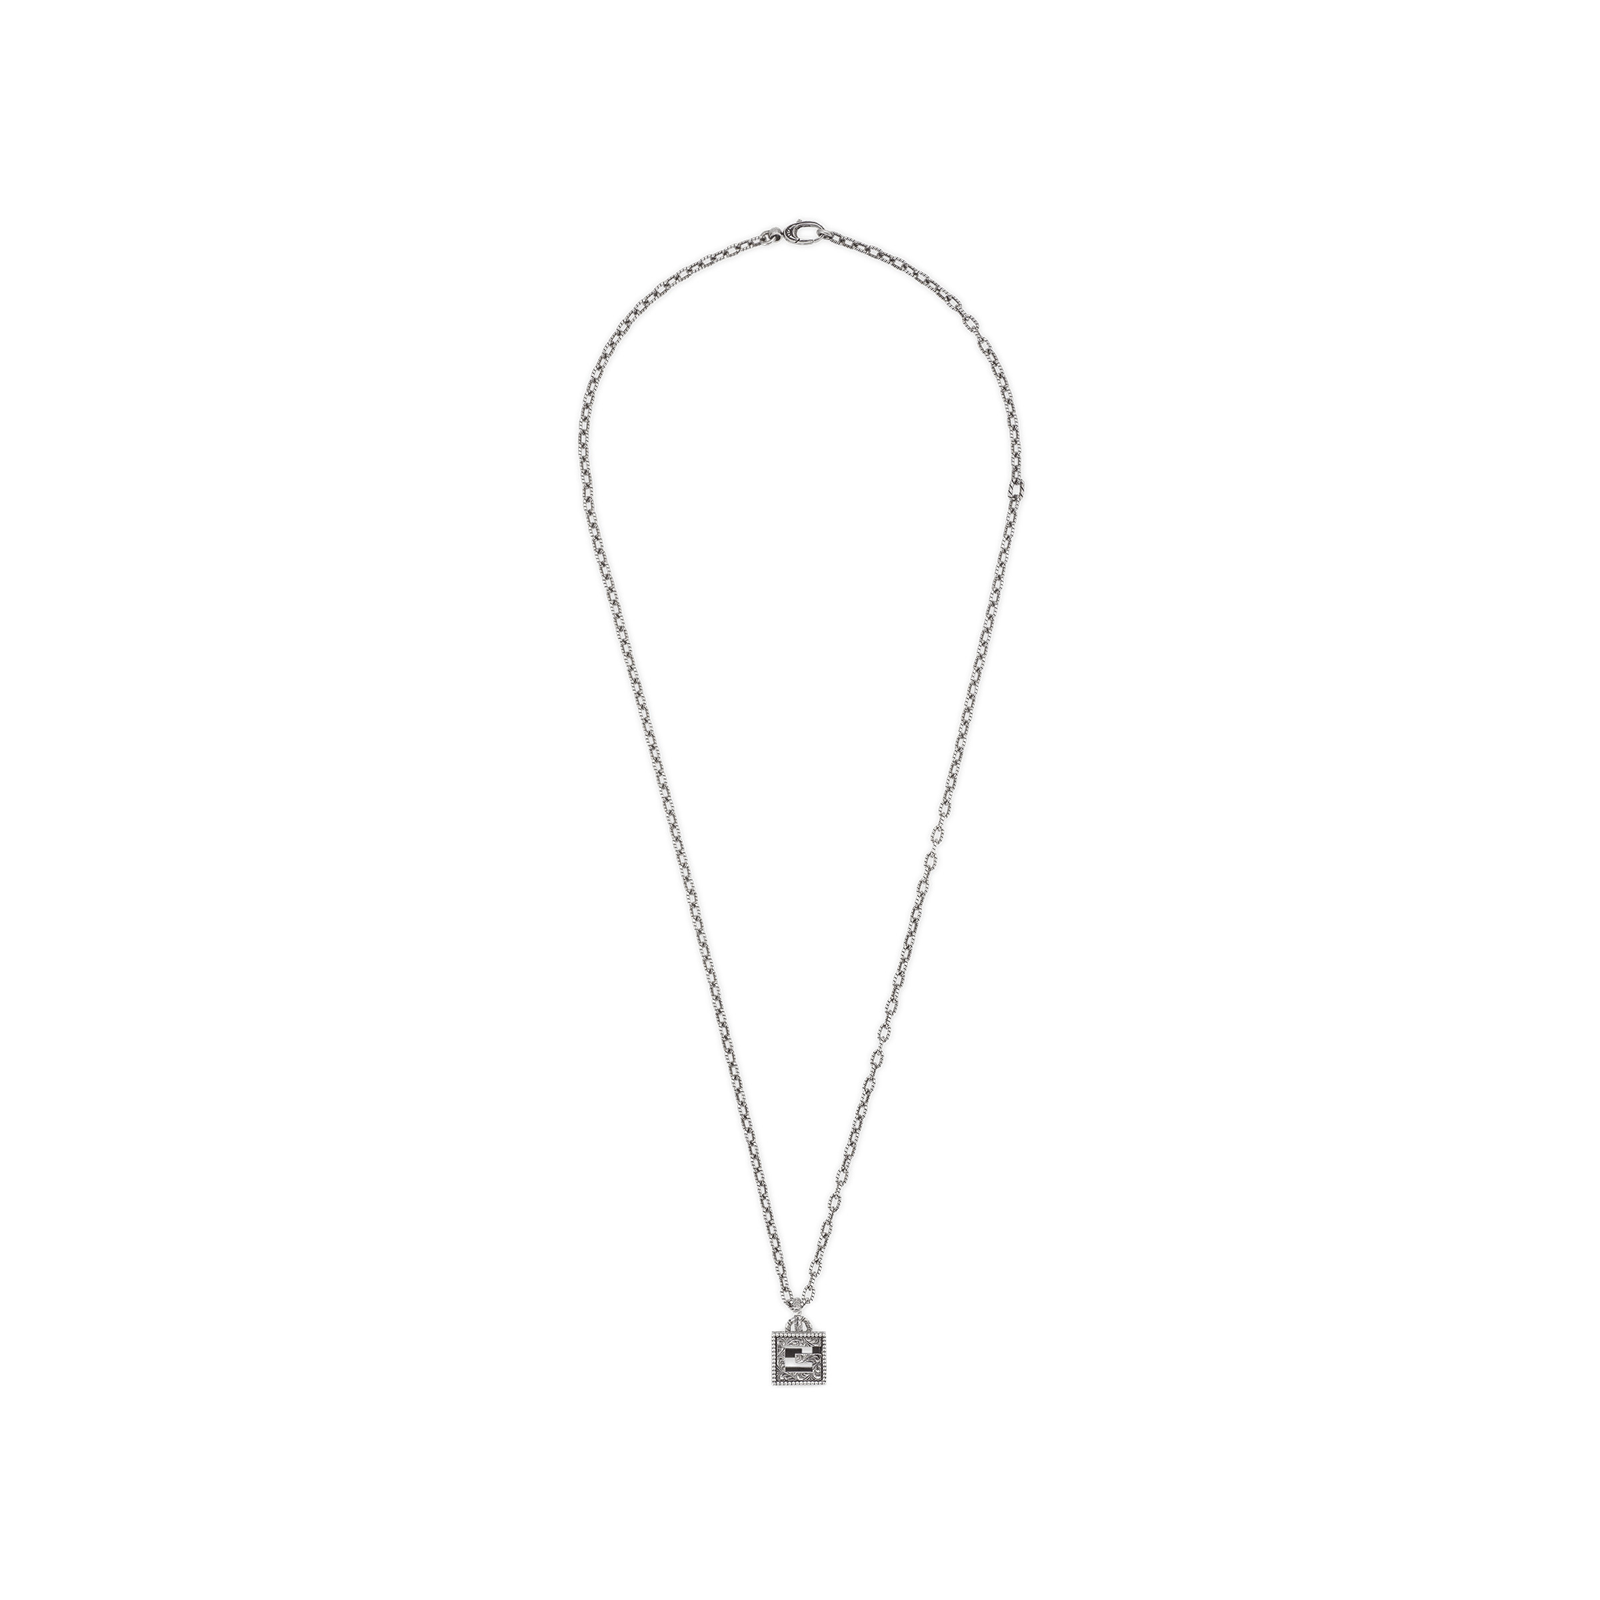 5a5f87d4a Gucci Necklace with Square G Cross in Silver | Necklaces | Jewellery |  Goldsmiths